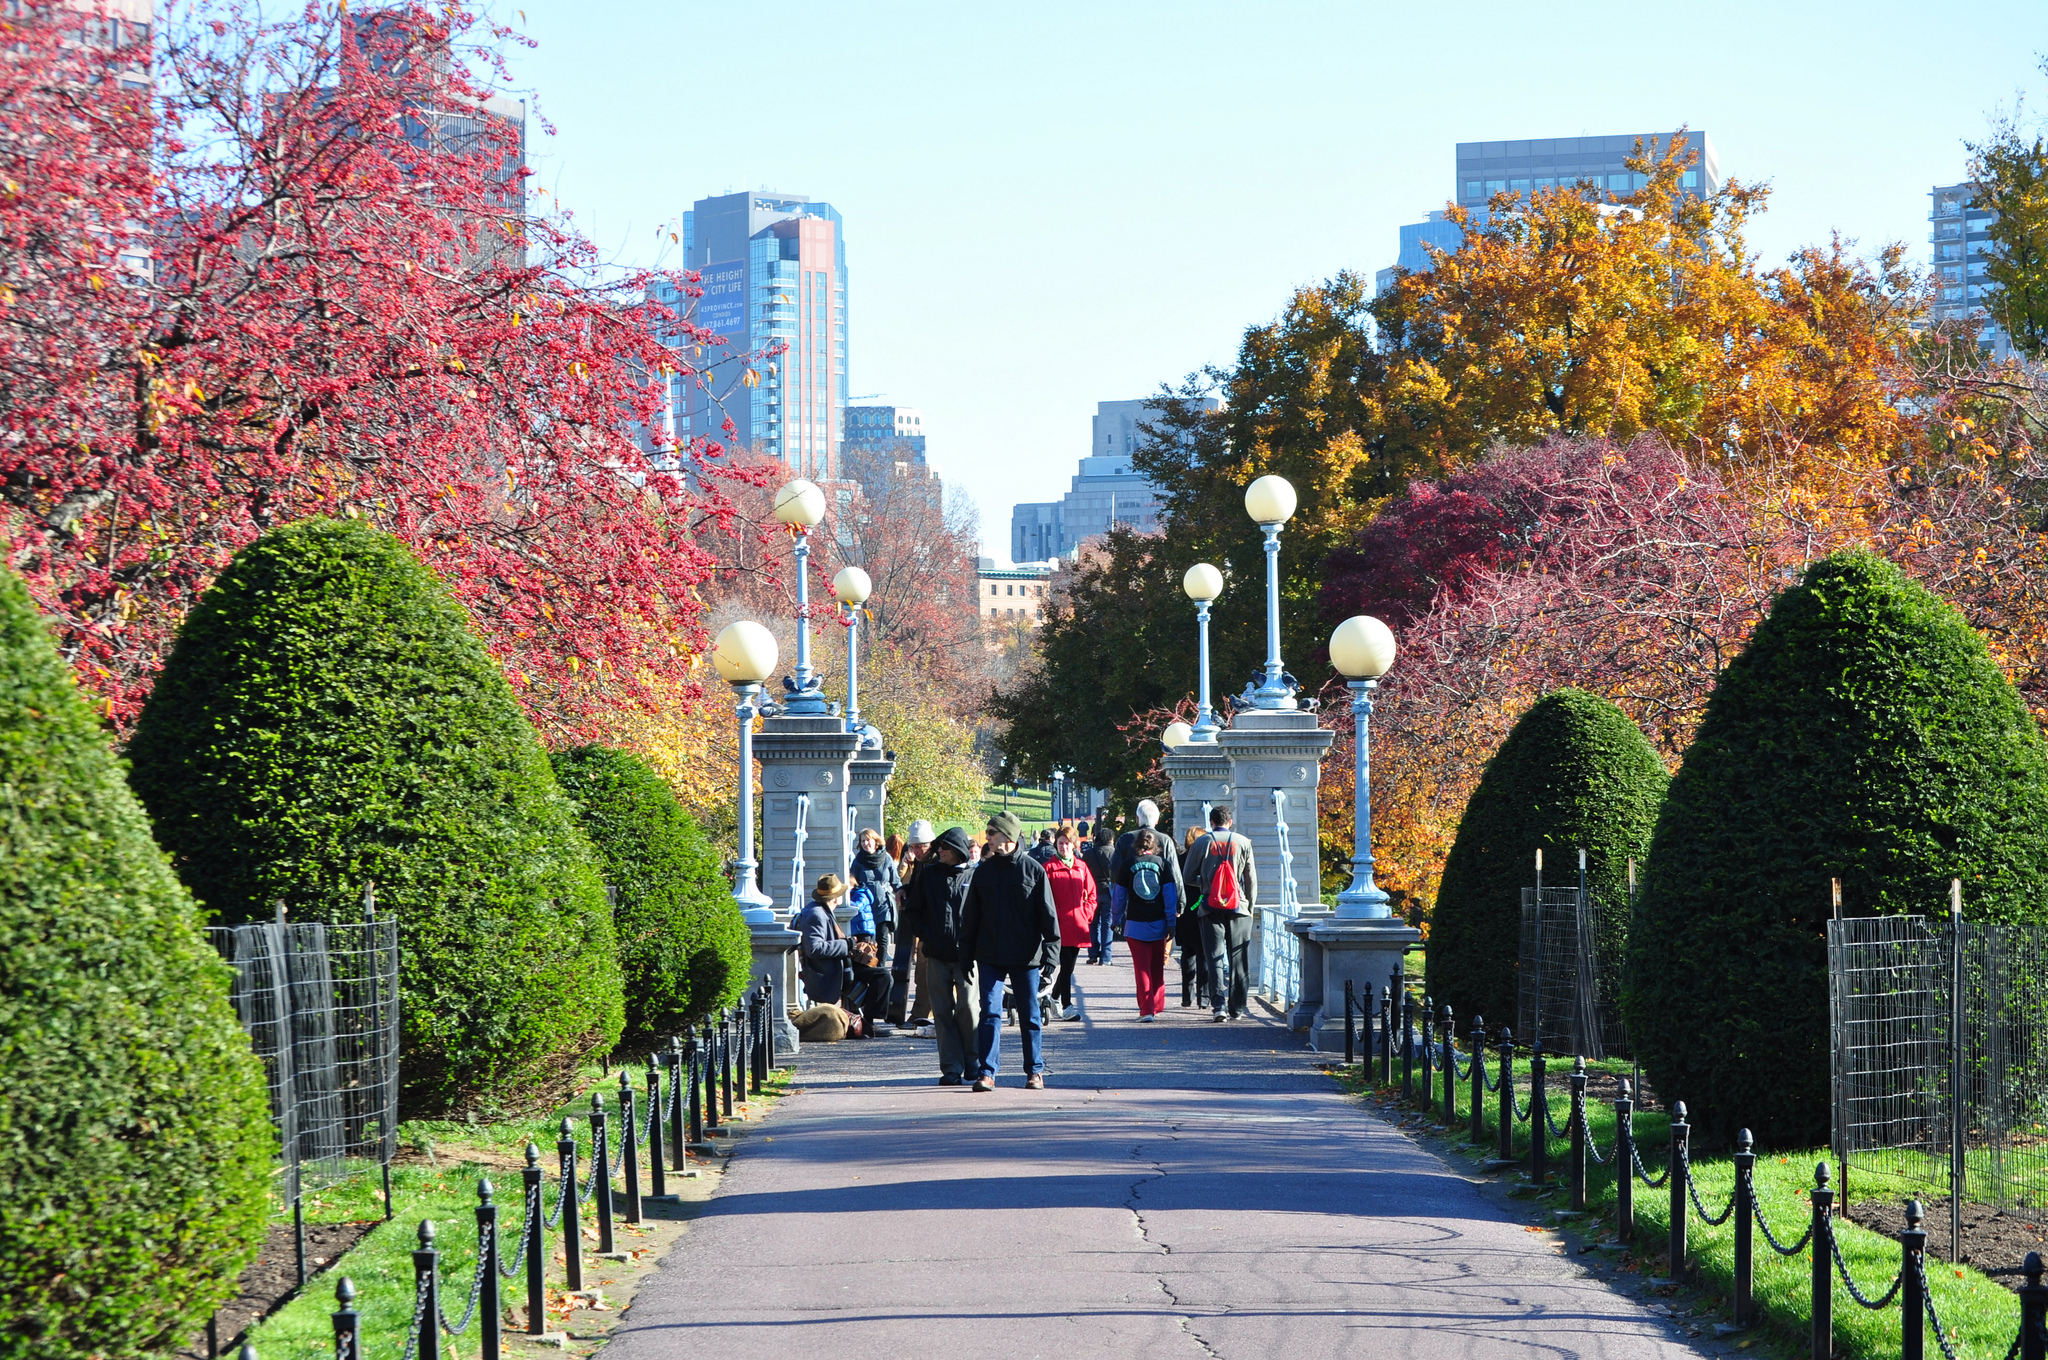 Take A Walk Through Boston Public Garden